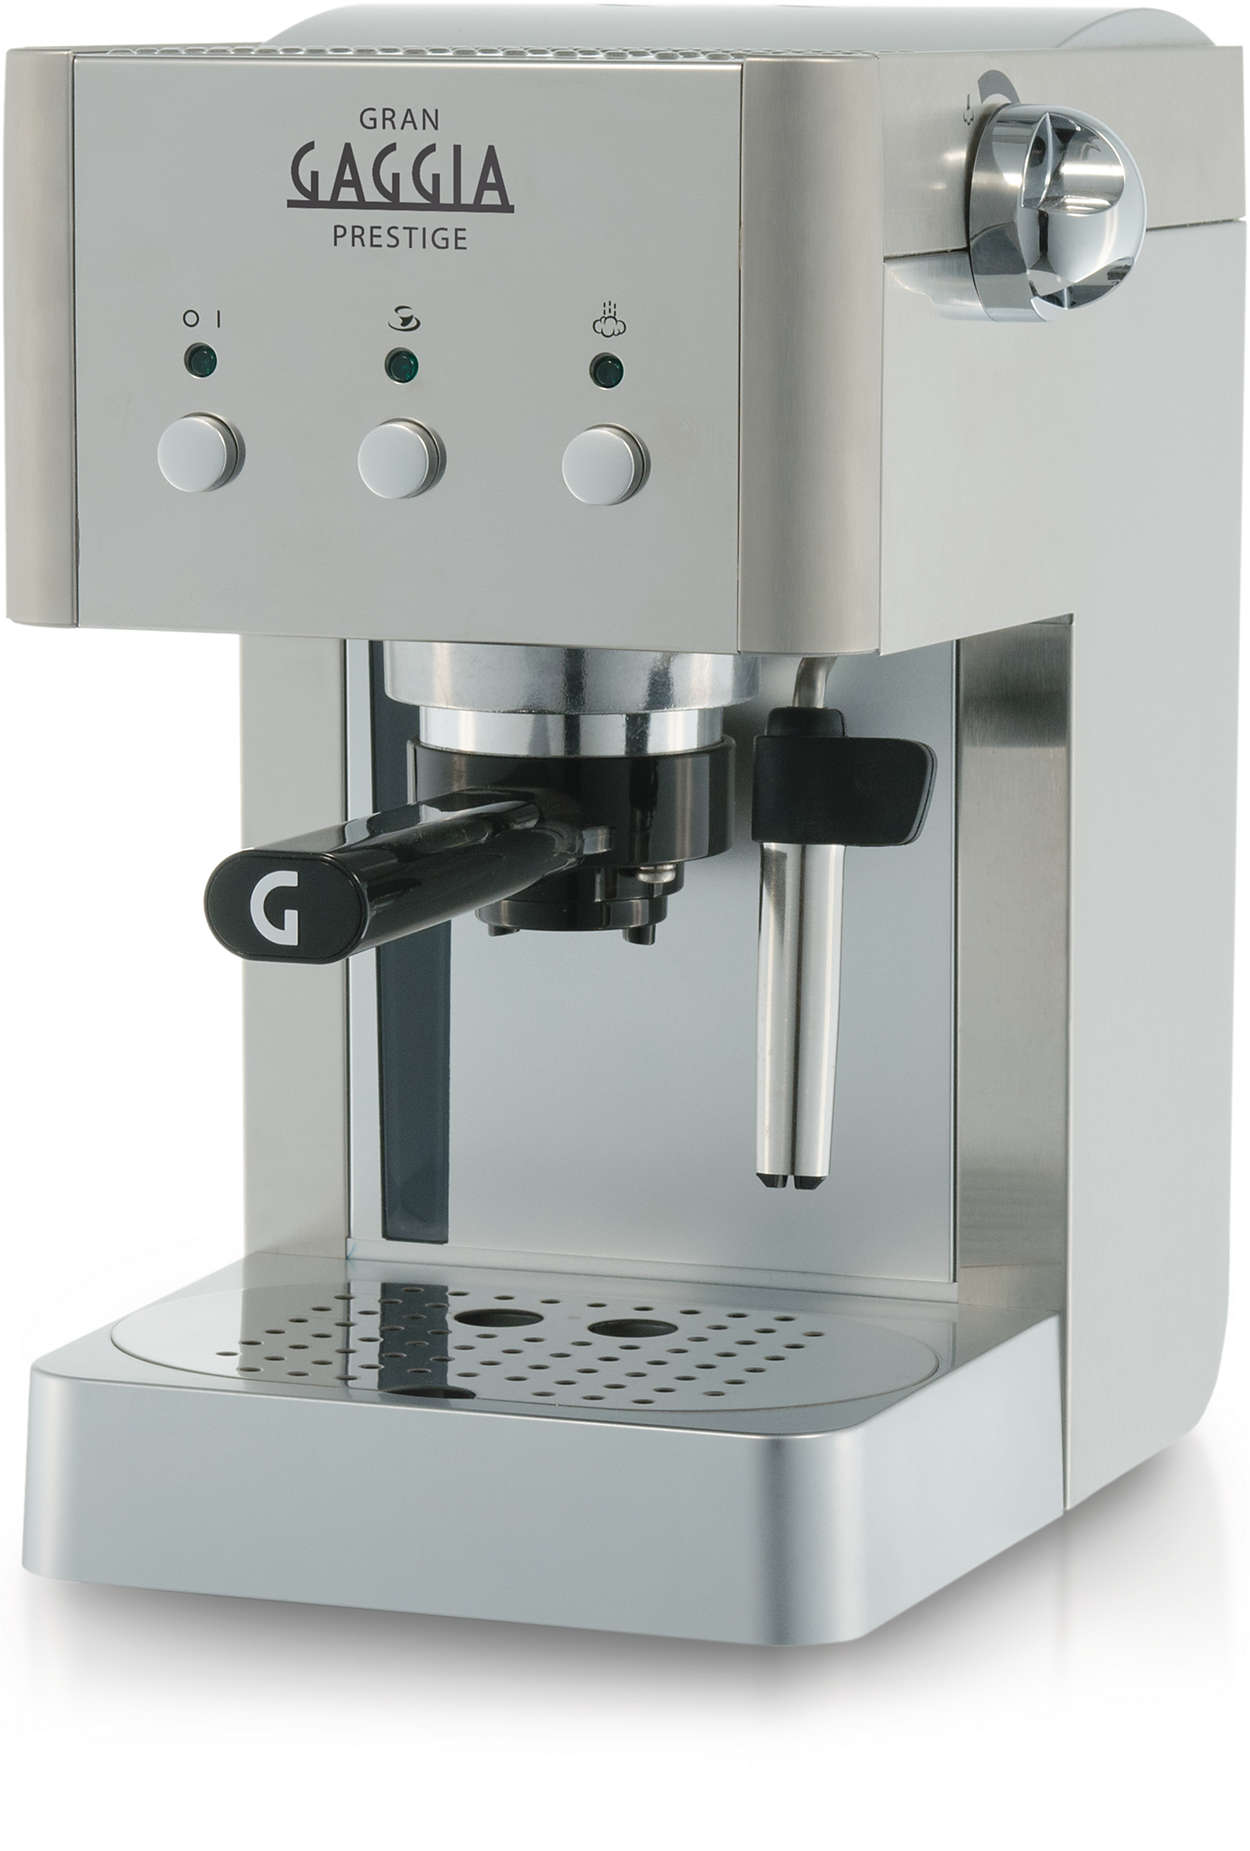 Compact design, professional performance in your cup